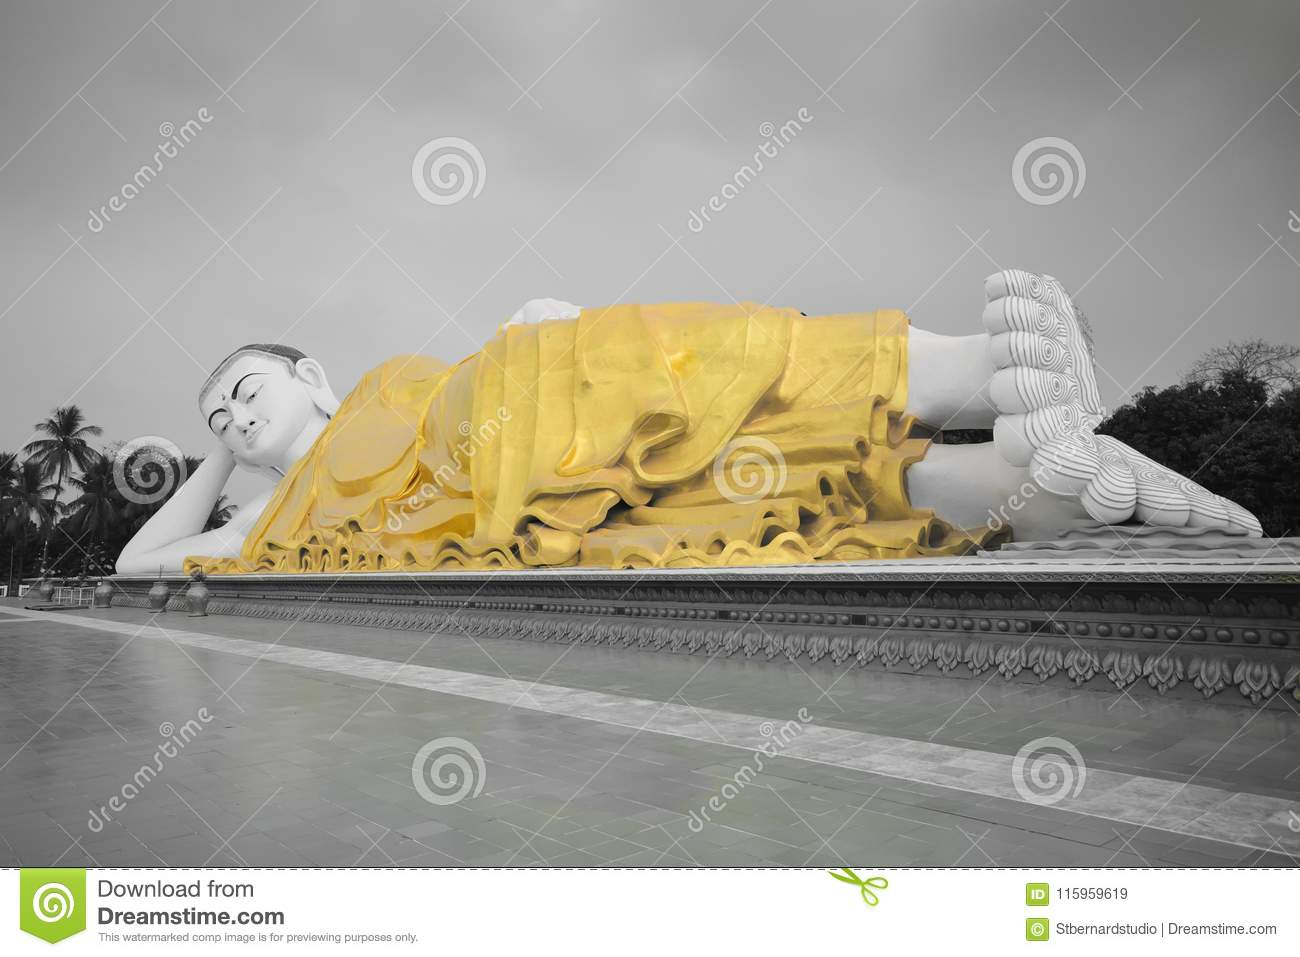 Full view of large Mya Tha Lyaung Reclining or sleeping Buddha in black and white with yellow robe